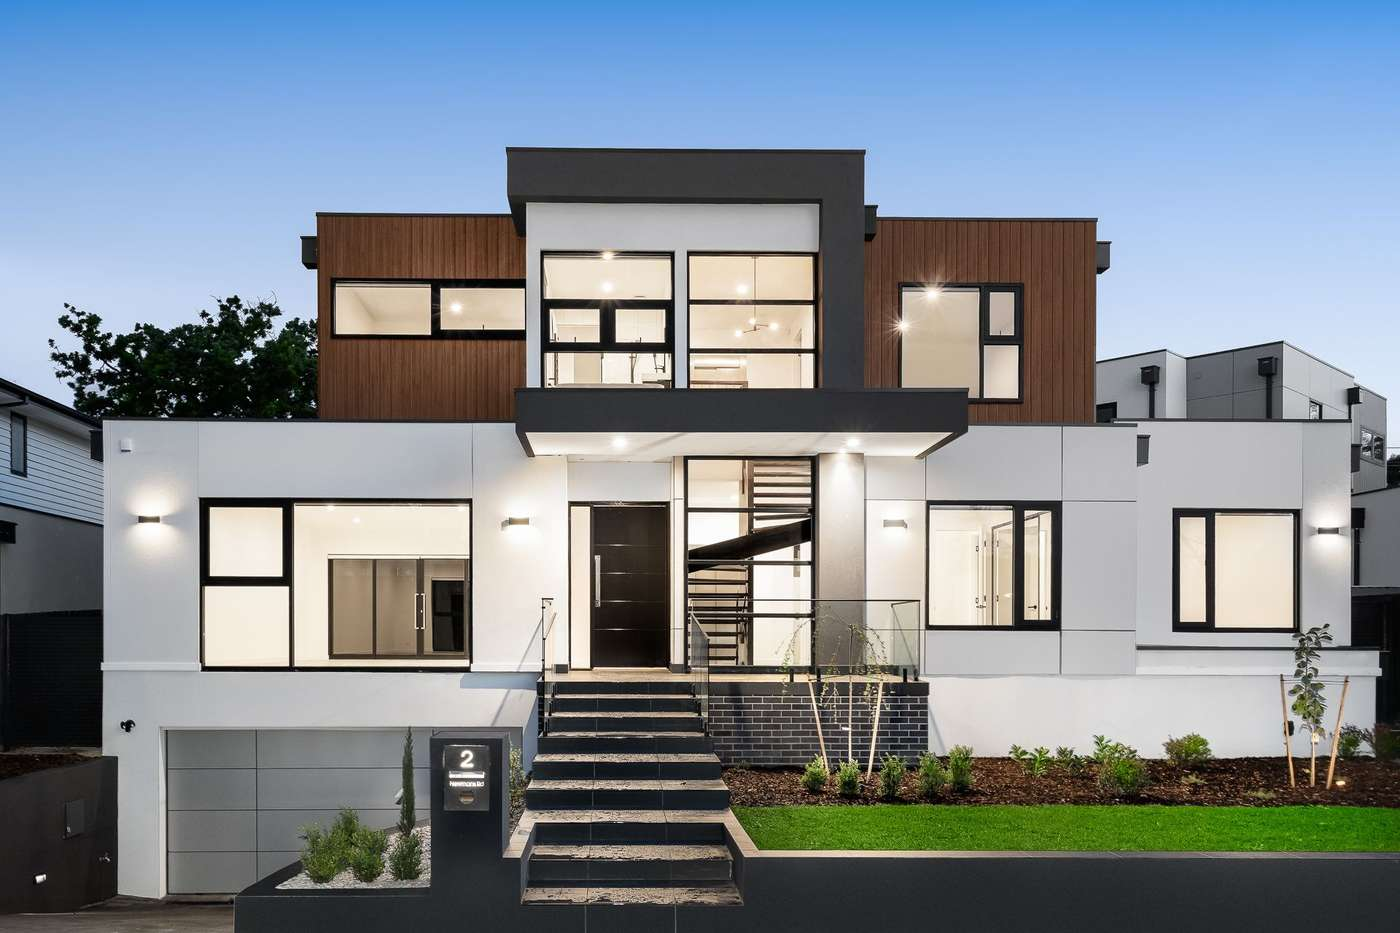 Main view of Homely house listing, 2 Newmans Road, Templestowe, VIC 3106